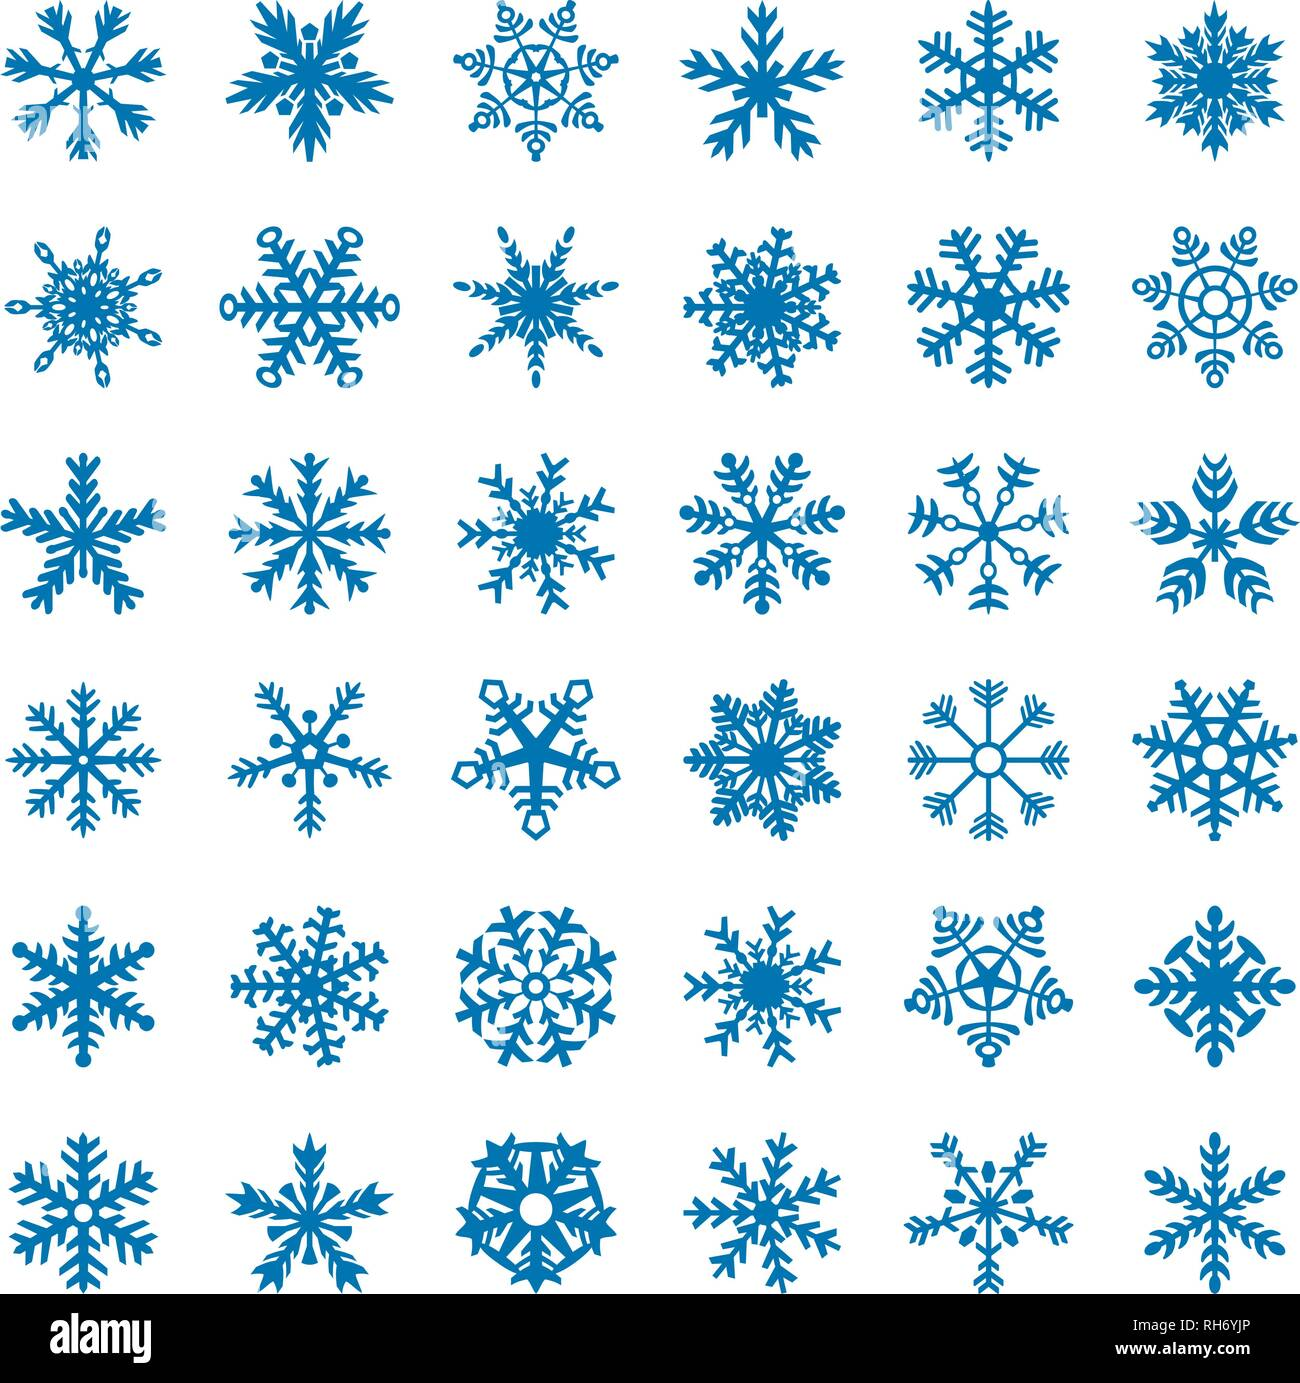 snowflake vector icon background set blue color winter white christmas snow flake crystal element weather illustration ice collection stock vector image art alamy https www alamy com snowflake vector icon background set blue color winter white christmas snow flake crystal element weather illustration ice collection image234337342 html